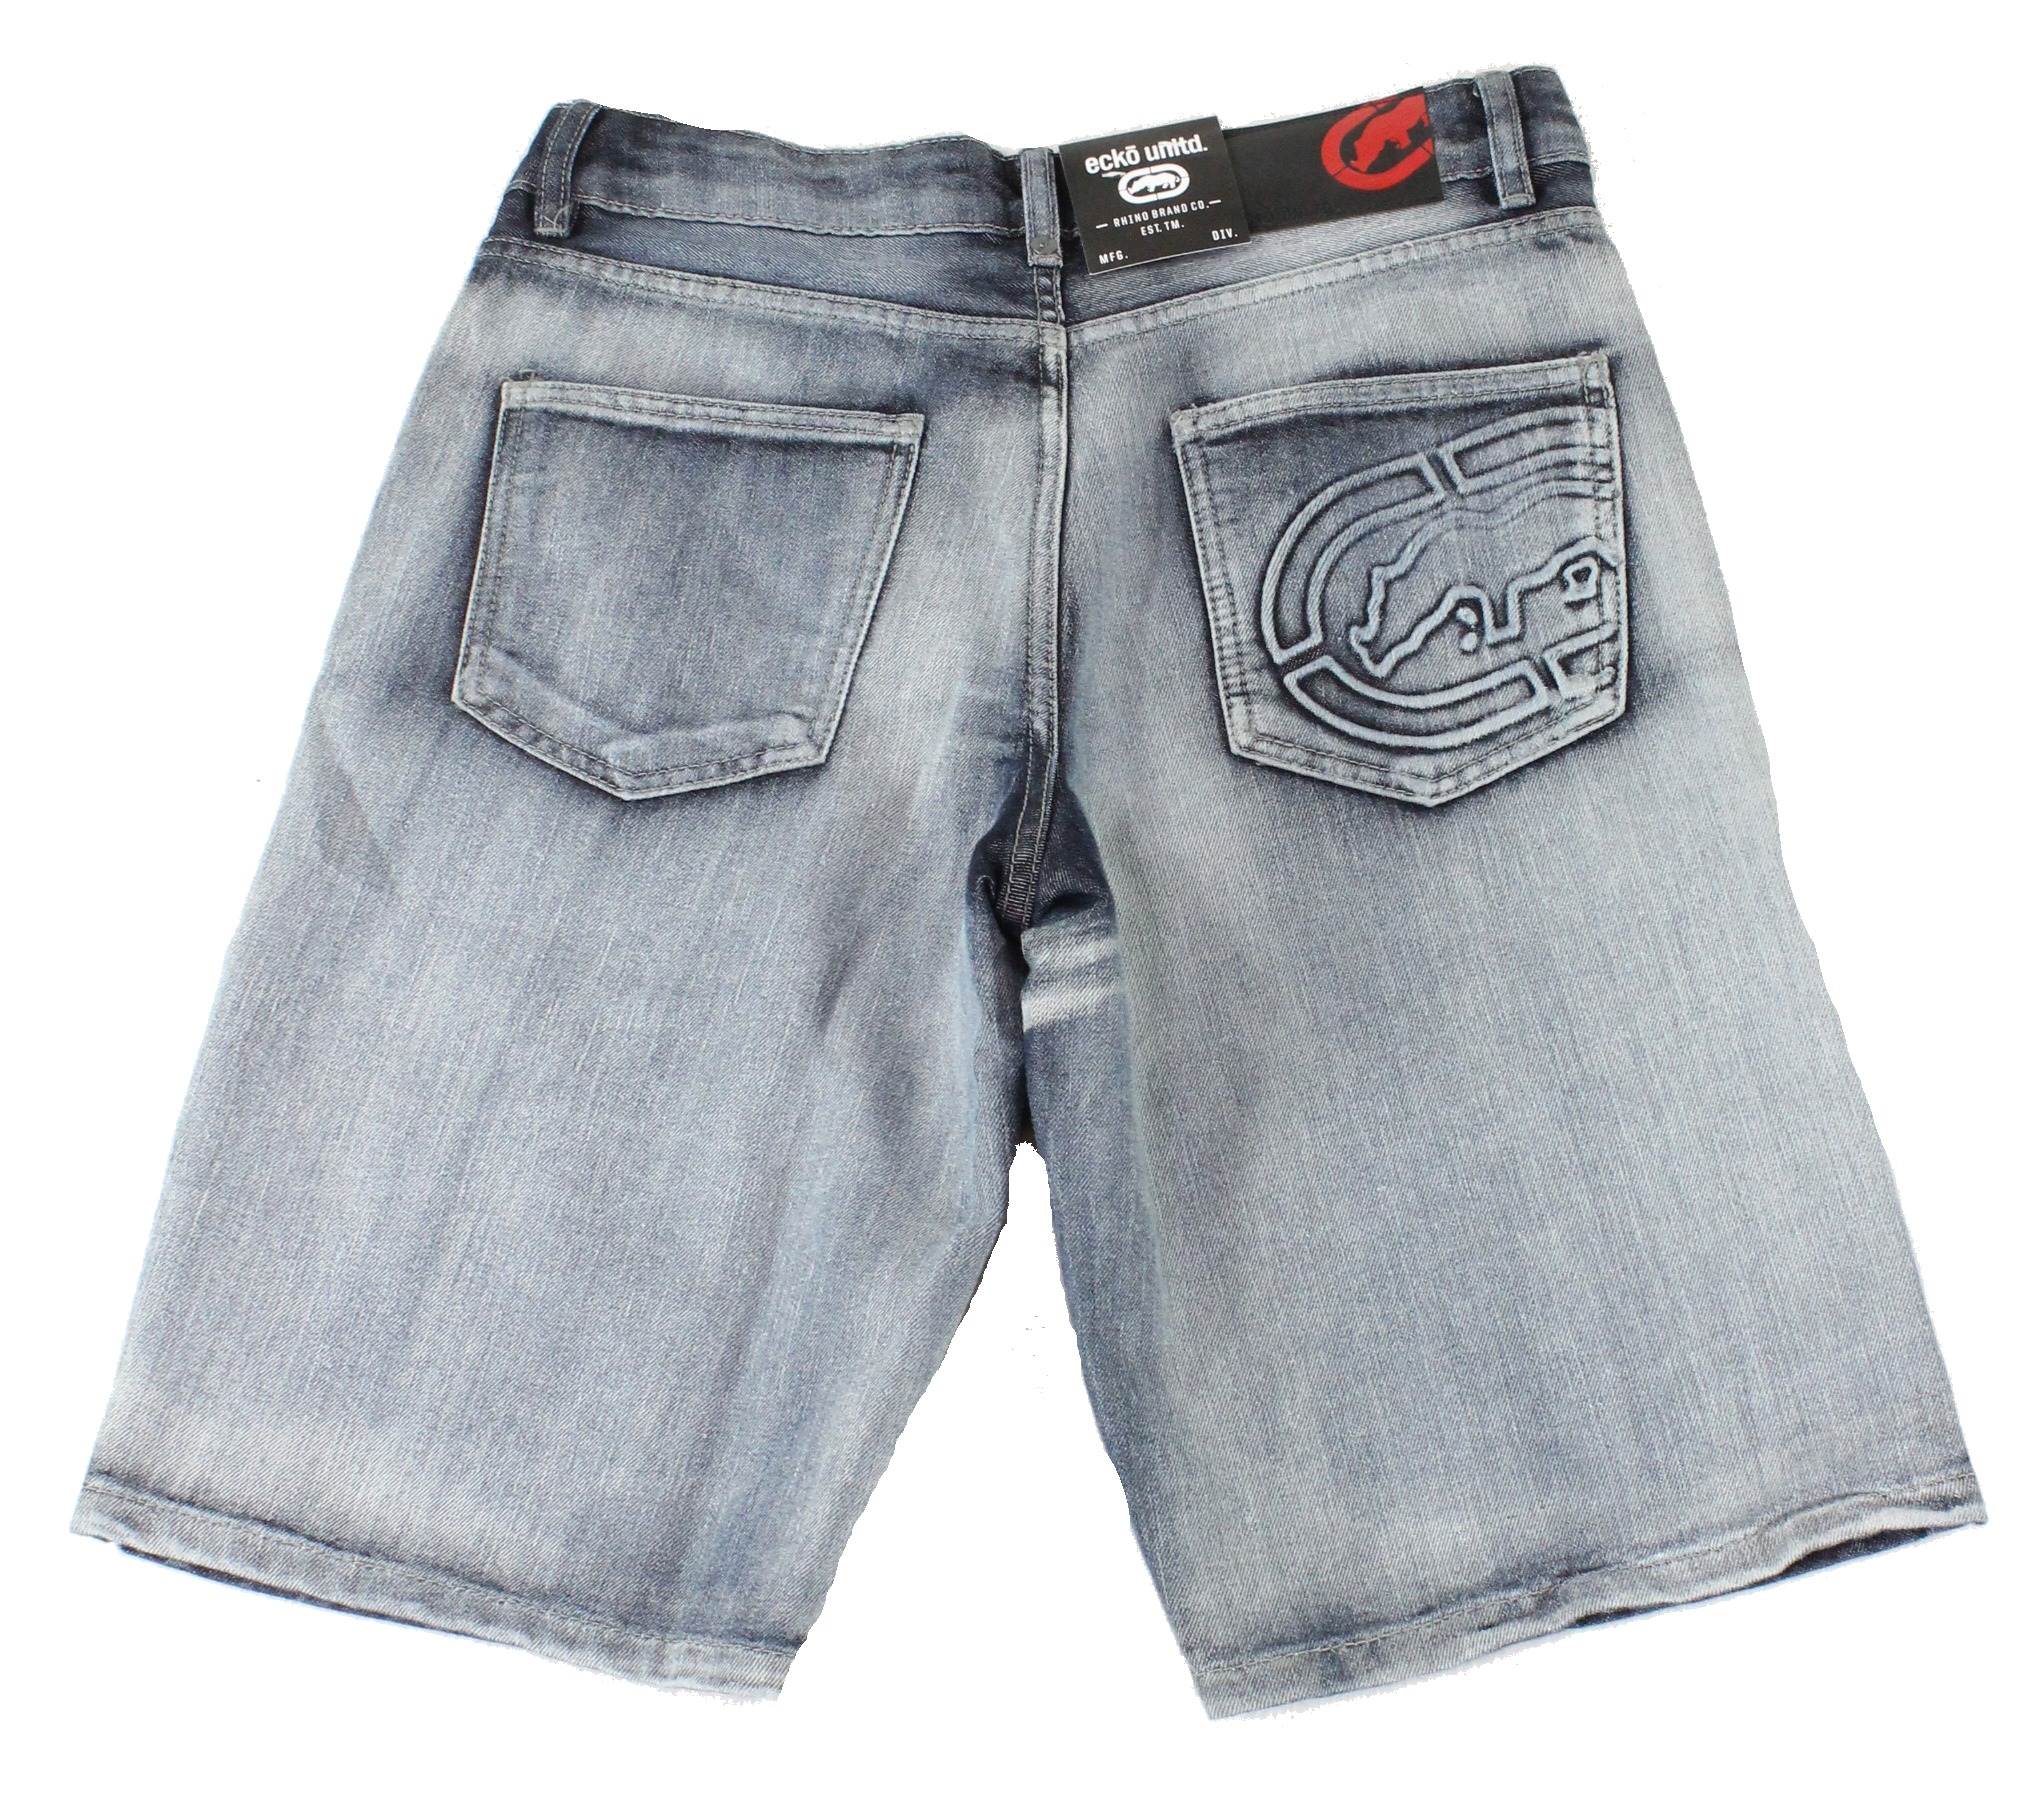 New-Ecko-Unltd-Mens-Shorts-Blue-Size-38-Denim-759-Relaxed-Logo-Embossed-39-174 thumbnail 2